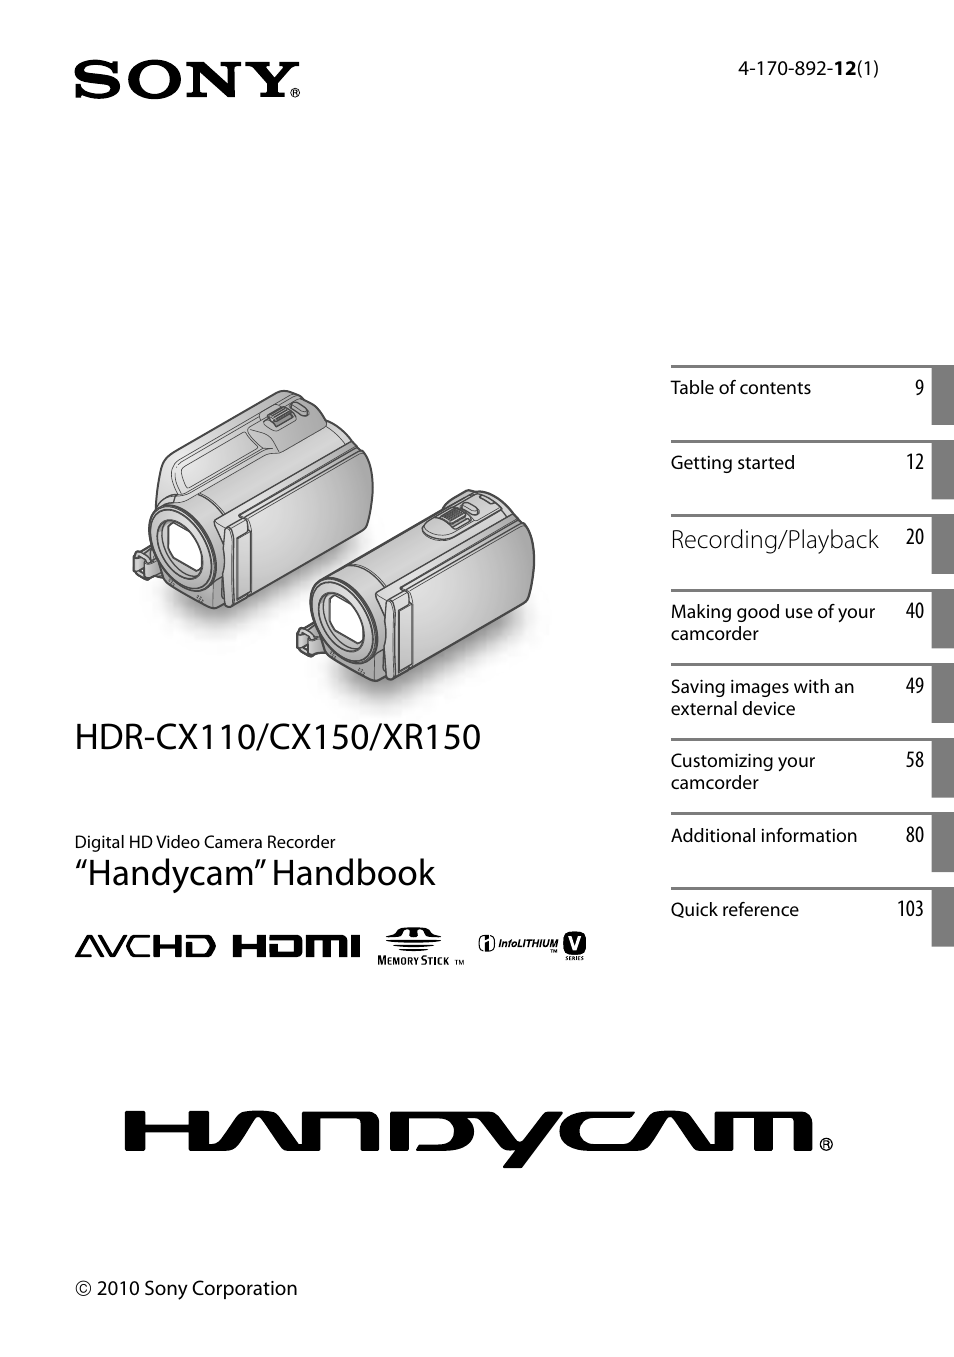 sony hdr xr150 user manual 109 pages also for hdr cx150 hdr cx110 rh manualsdir com sony handycam hdr-xr150 manual download hdr-xr150e manual